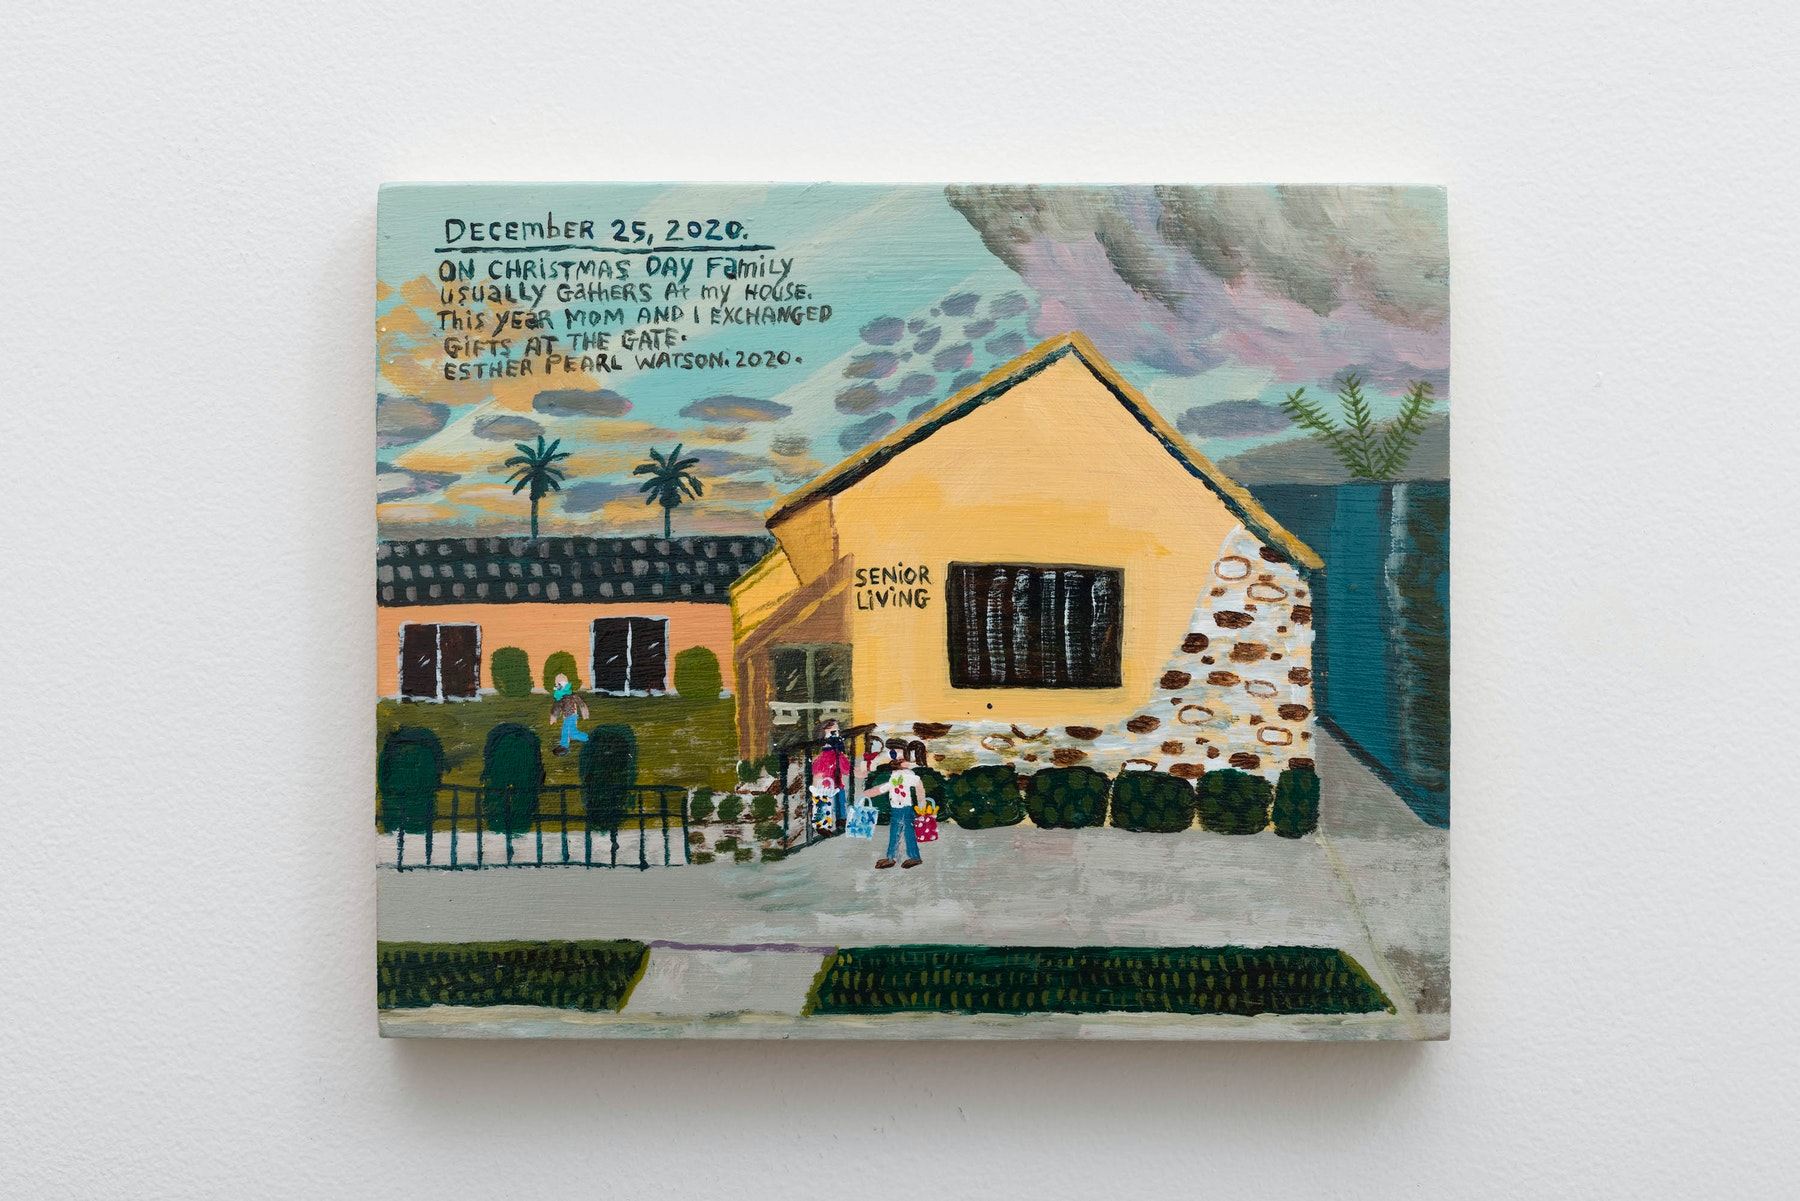 """Esther Pearl Watson """"December 25, Exchanged Gifts at the Gate,"""" 2020 Acrylic on panel 8"""" x 10"""" x ⁷⁄₈"""" [HxWxD] (20.32 x 25.4 x 2.21 cm) Inventory #EPW397 Courtesy of the artist and Vielmetter Los Angeles Photo credit: Jeff McLane Signed and dated on back"""